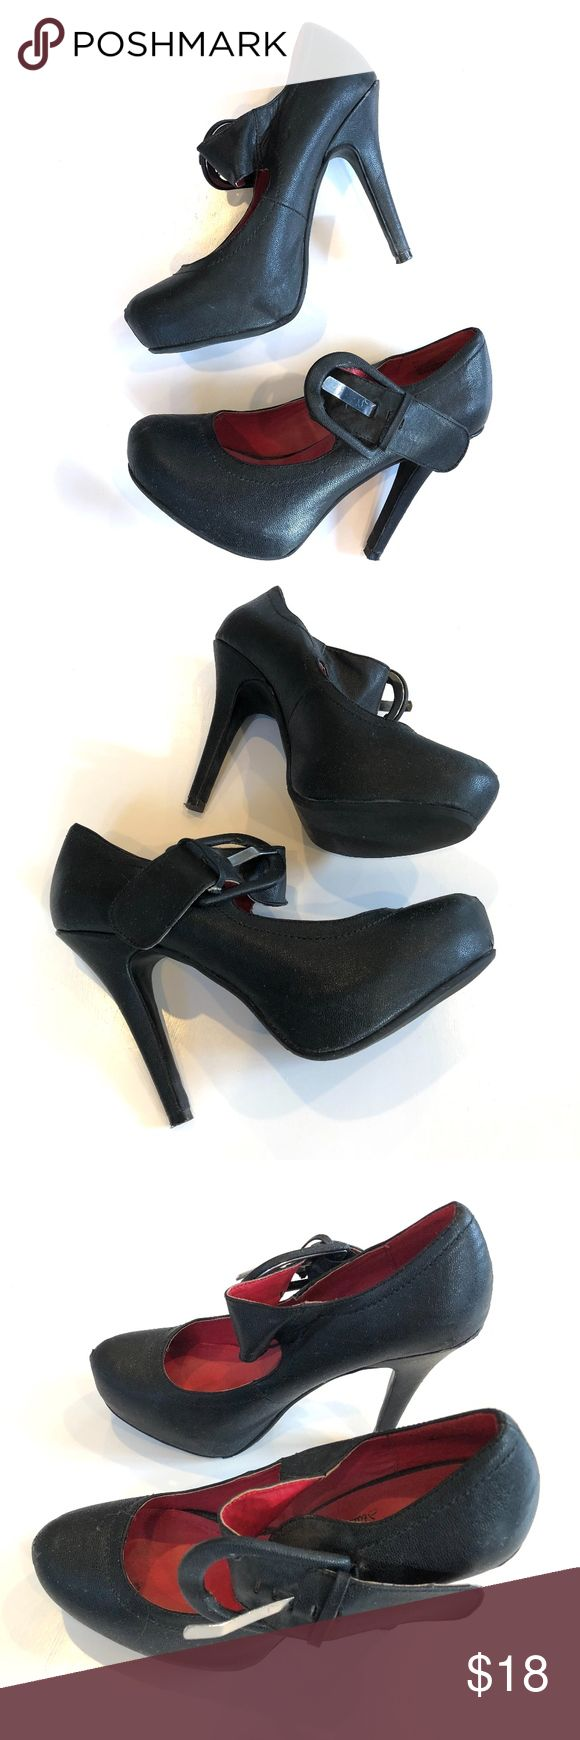 Madeline Stewart Black Mary-Jane Heels Size 7M Up for sale preowned pair of Black Mary Jane Heels, shoes show slight wear, back of the heels has some scratches, please see photos for details and condition of the shoe. Size 7M. Check out my closet, bundle and give me your offer! Madeline Stuart Shoes Heels